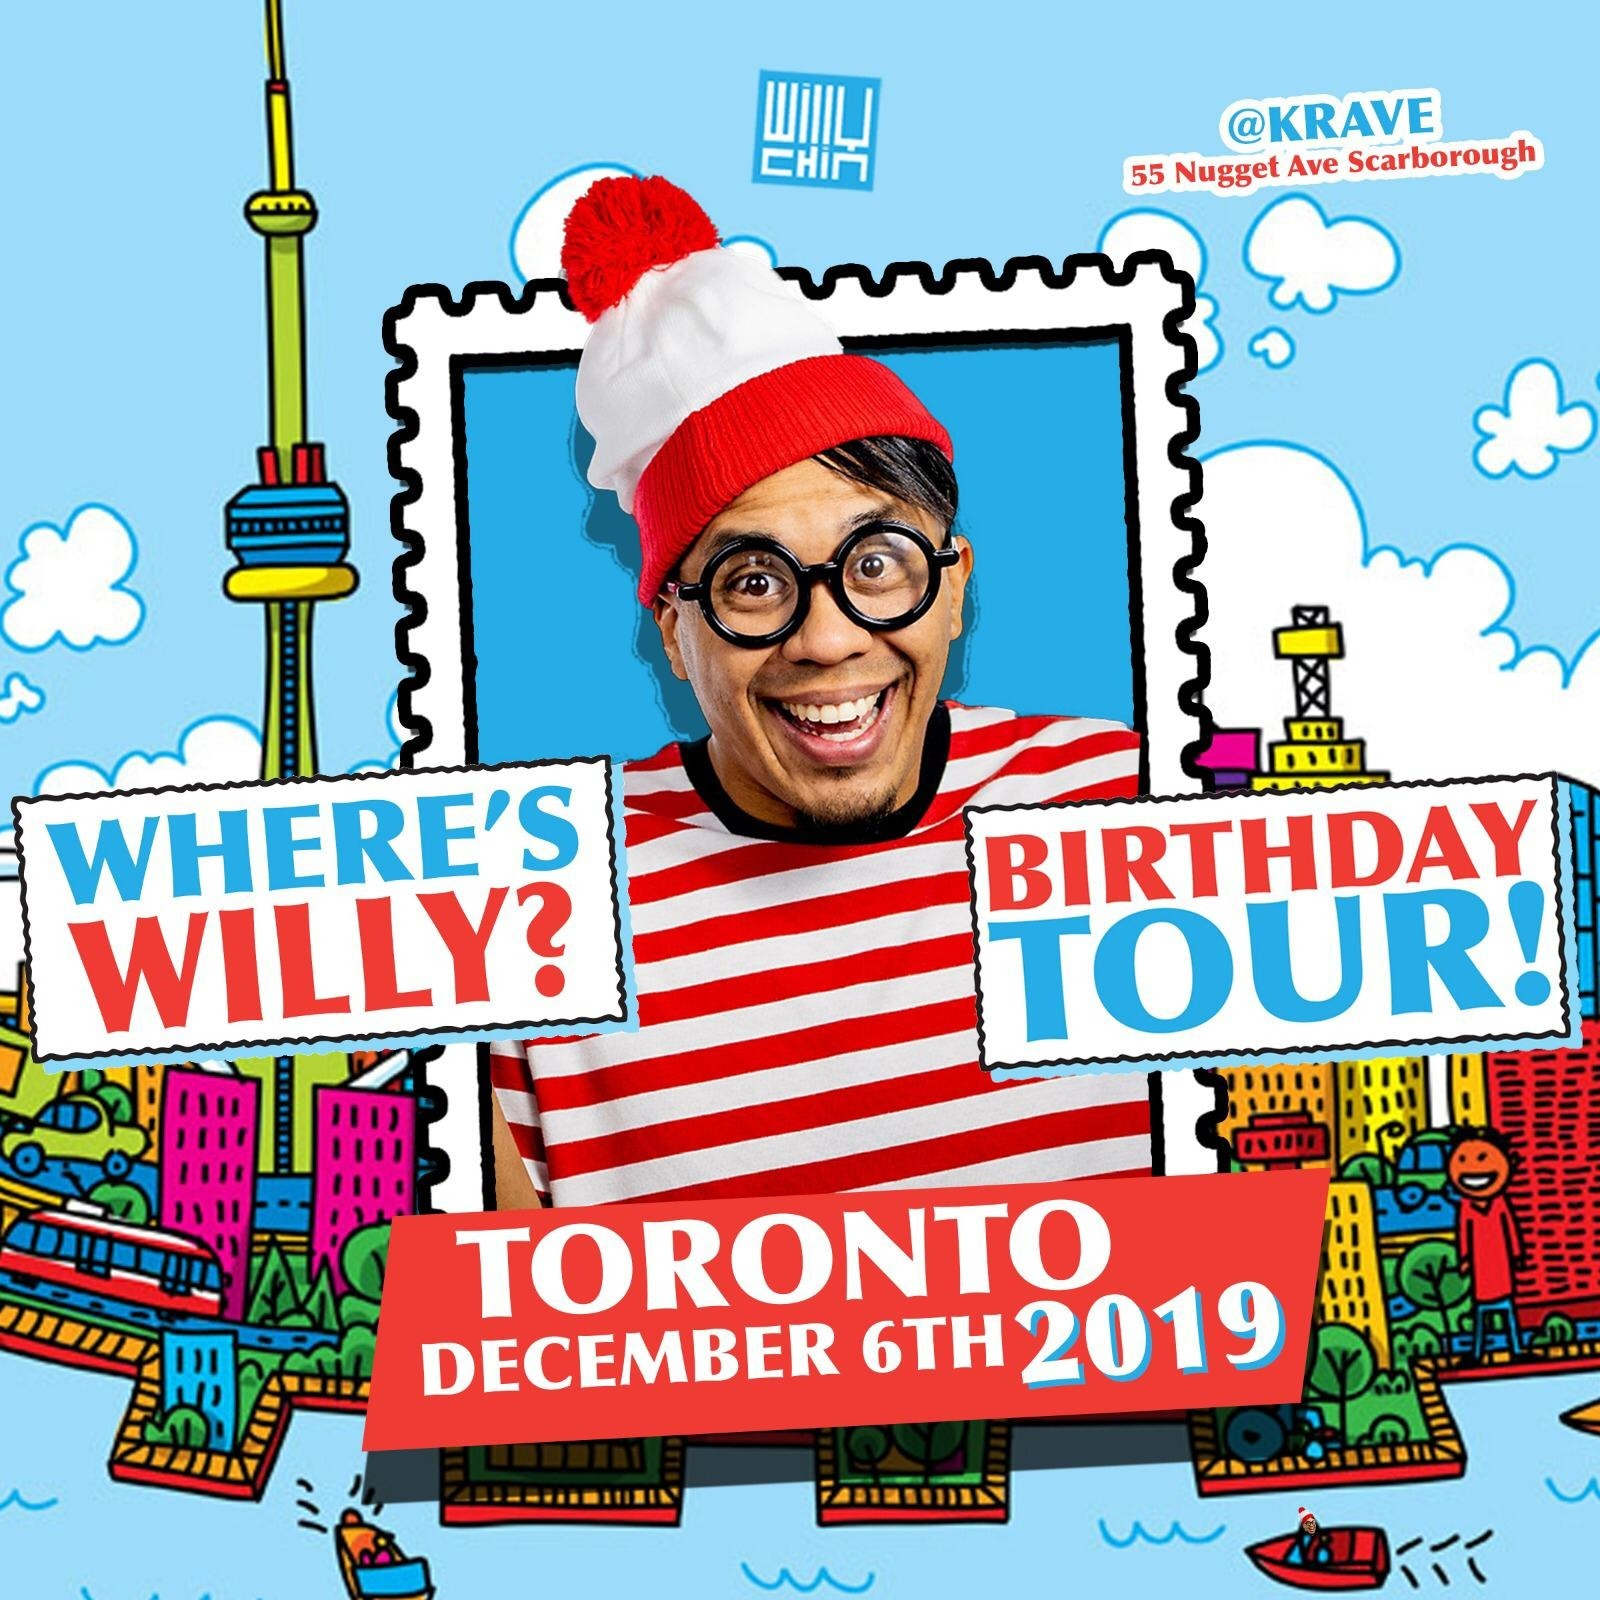 Where's Willy - Birthday Tour